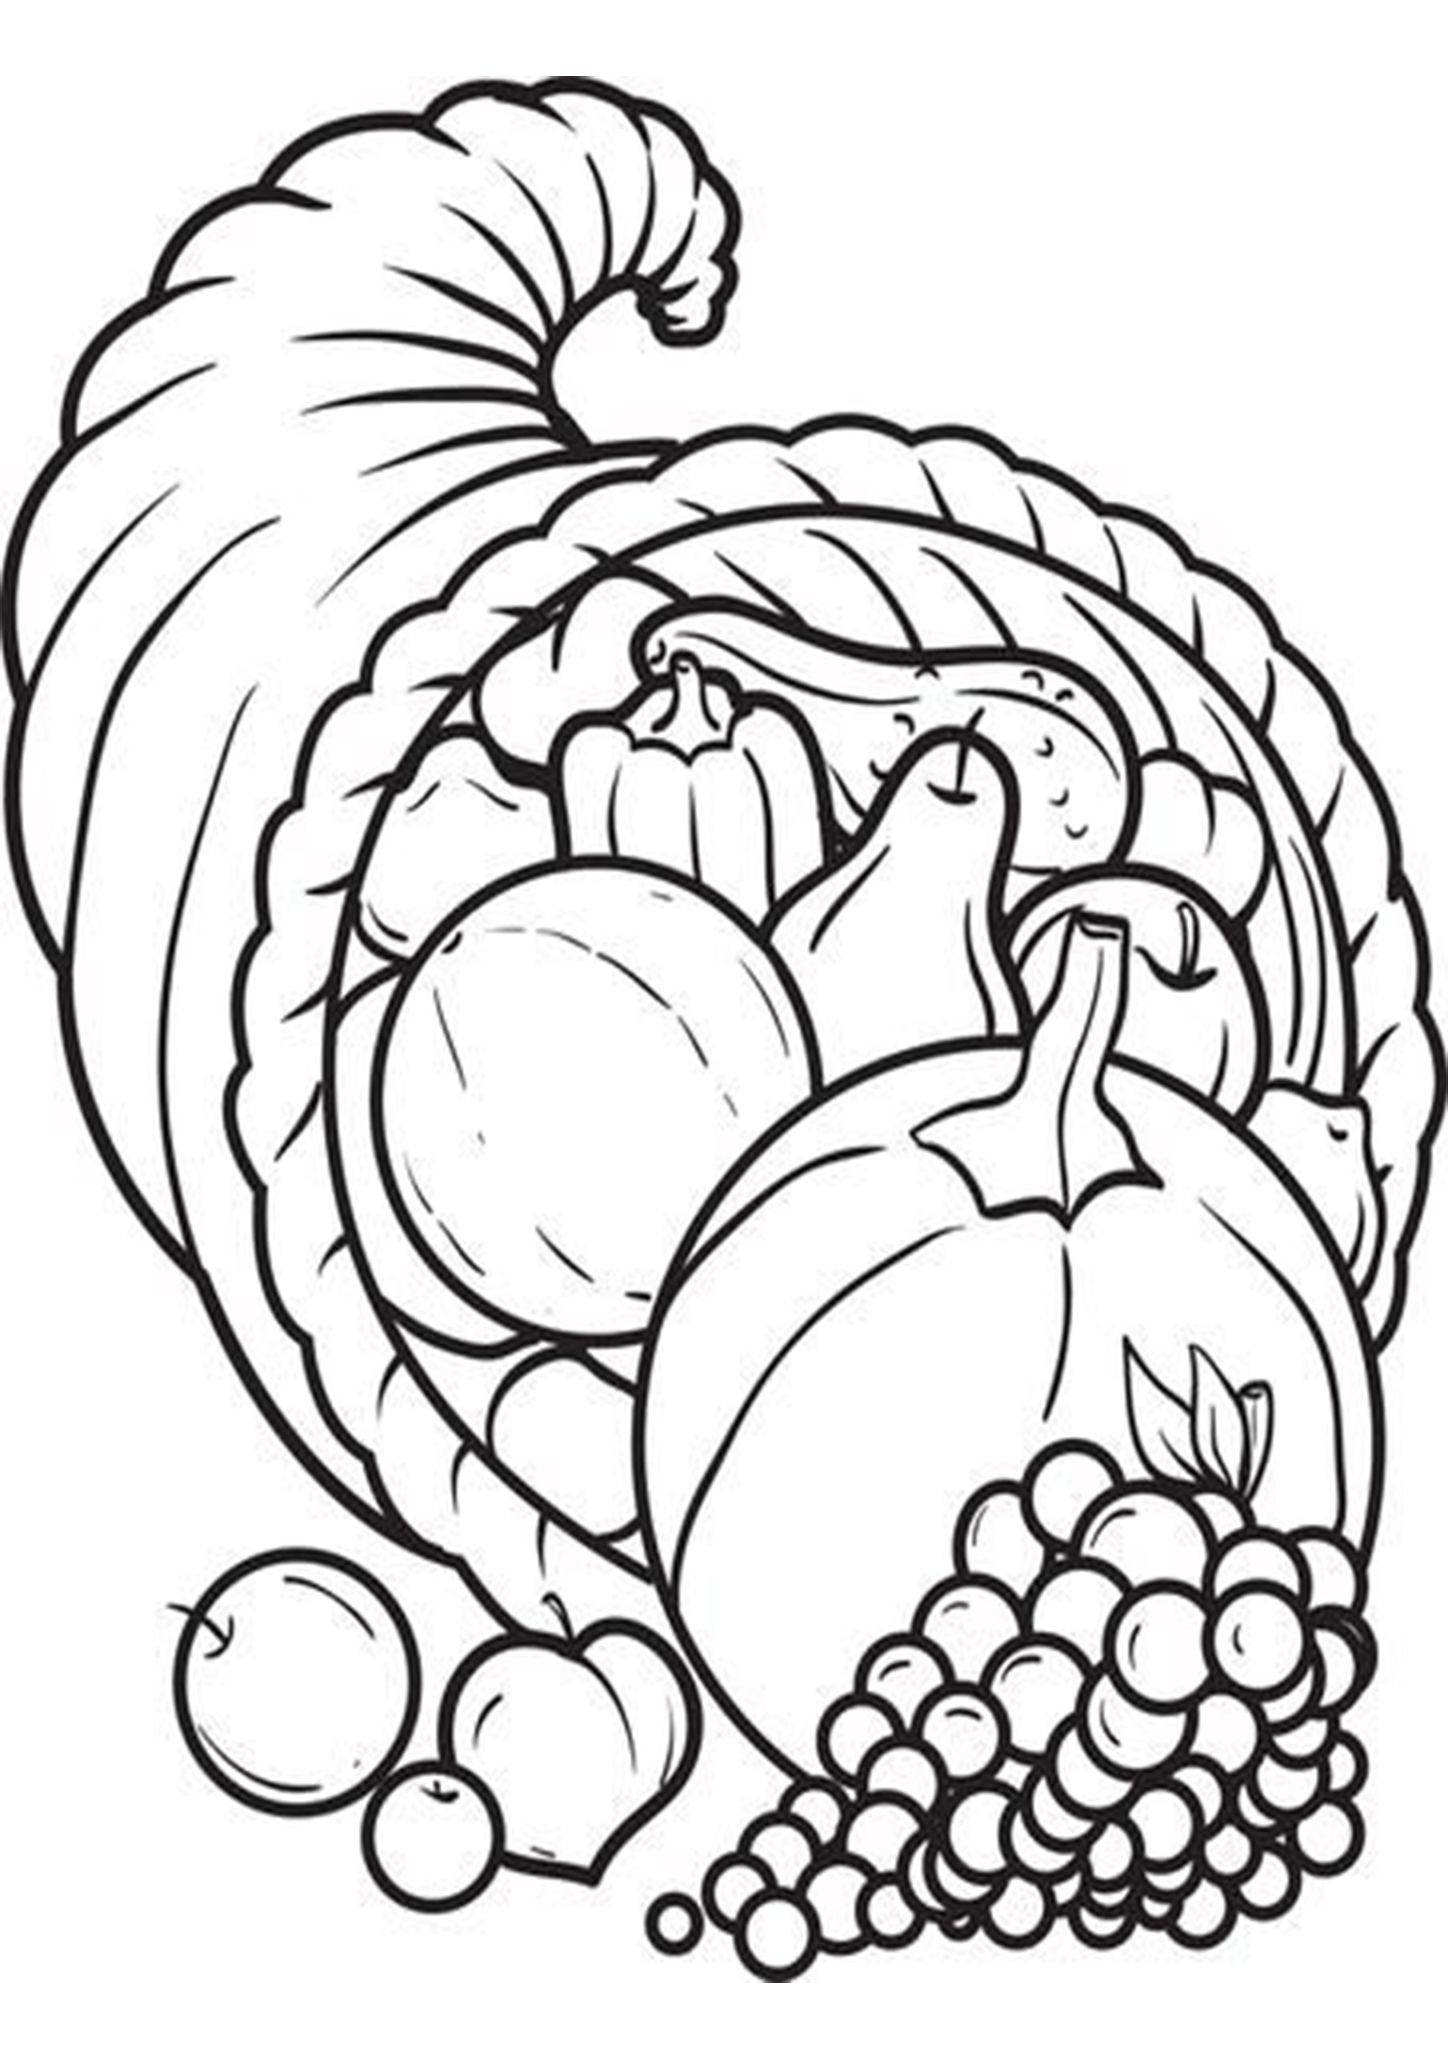 Free & Easy To Print Food Coloring Pages in 2020 | Turkey ...